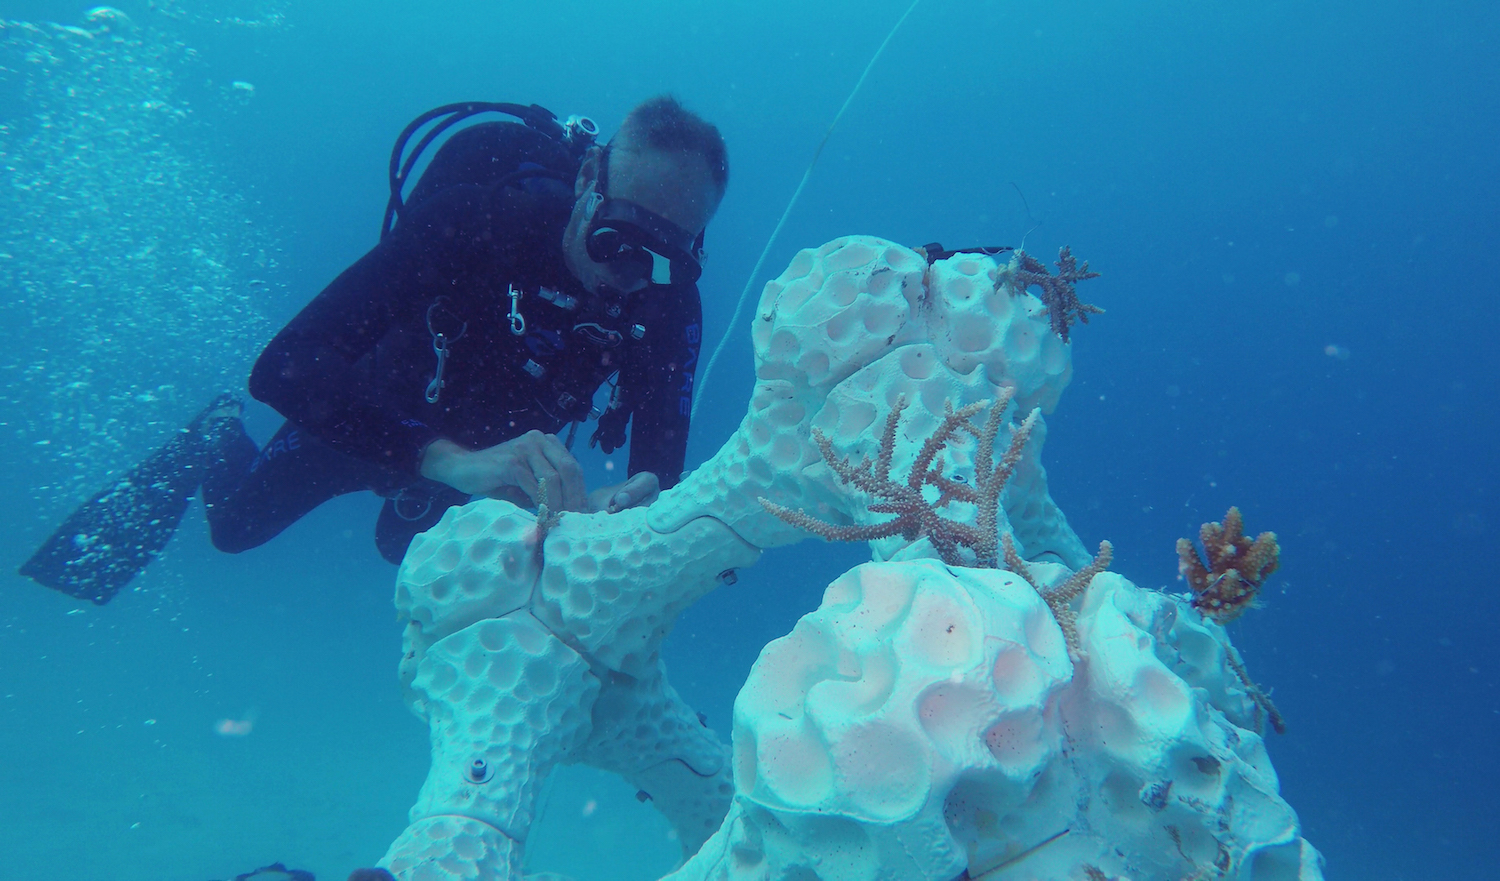 Summer Island Maldives' 3D reef makes its way to the Guinness list of world records Image